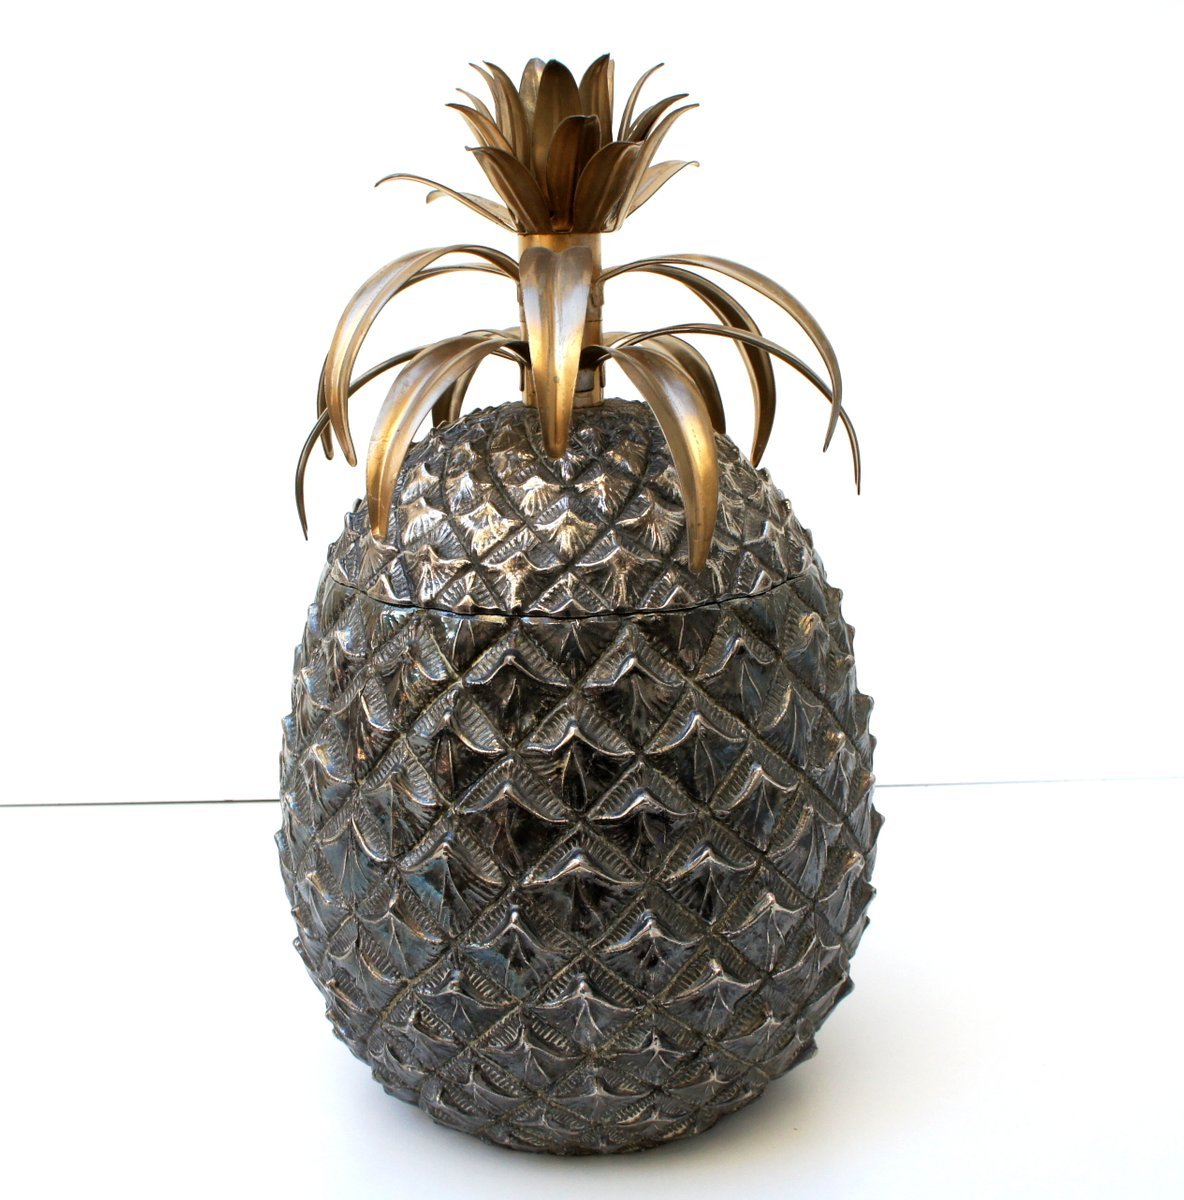 seau glace ananas en argent par mauro manetti pour. Black Bedroom Furniture Sets. Home Design Ideas